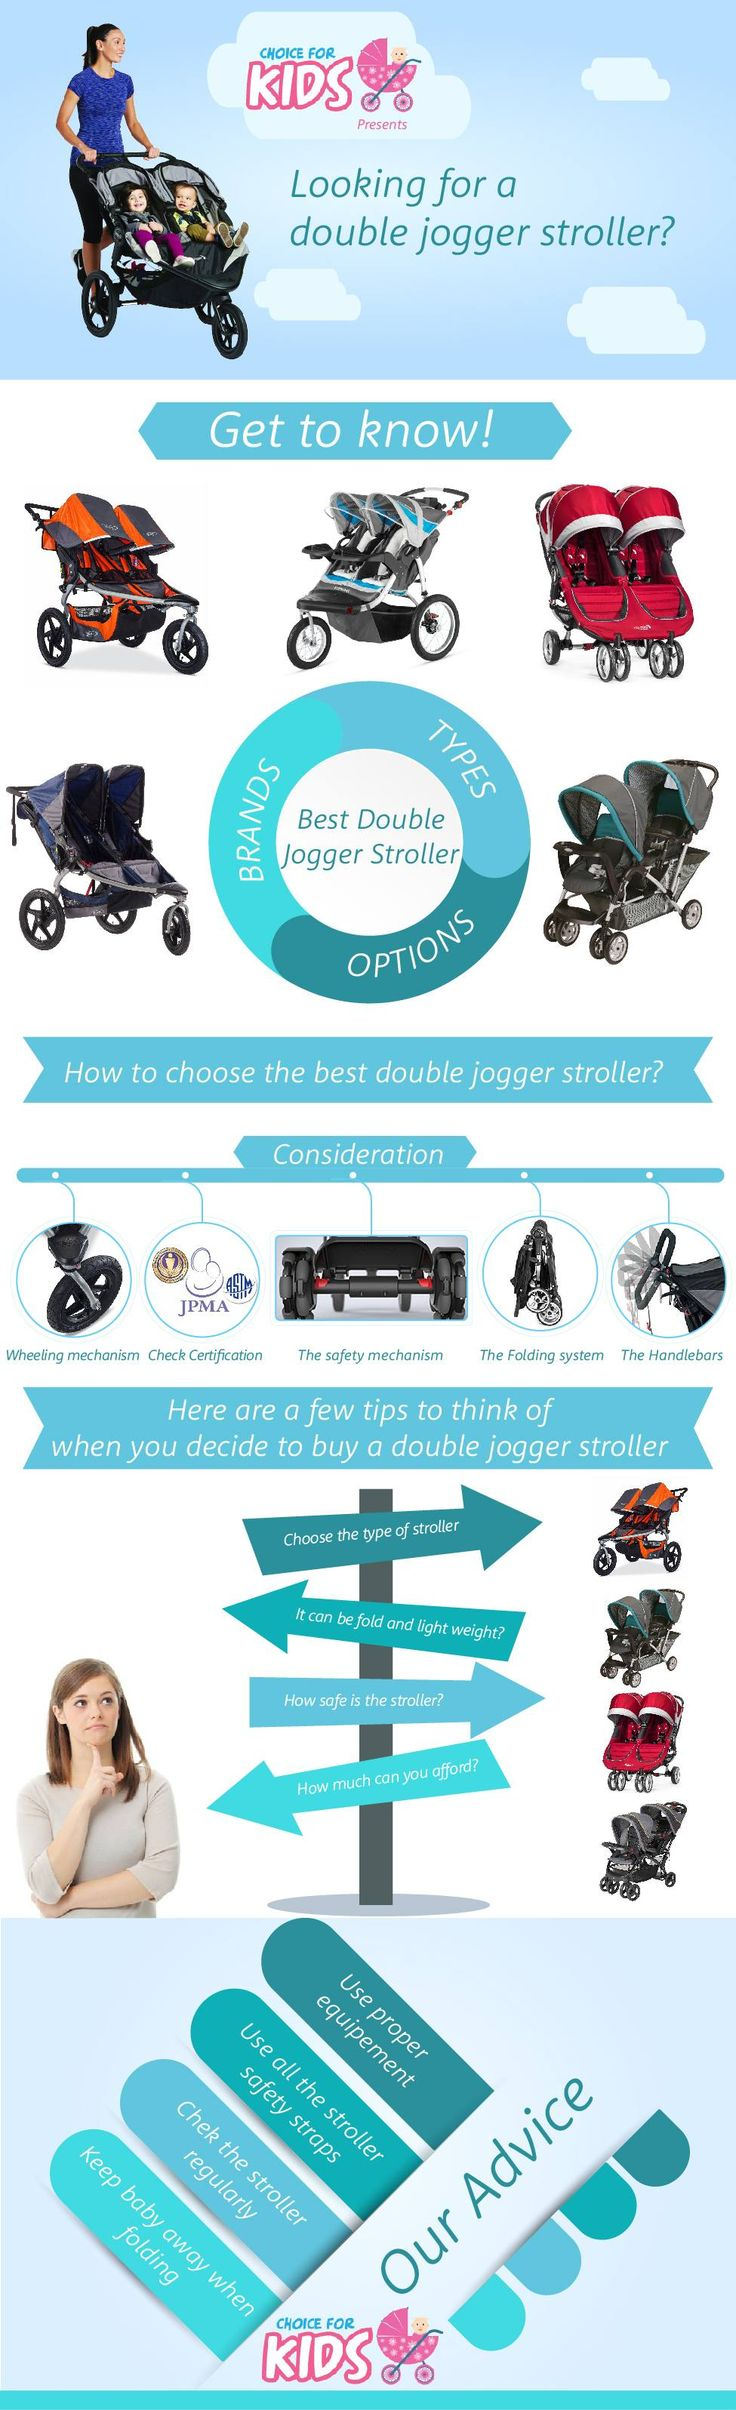 welcome to our double jogging stroller infographic where you learn the Step by step guideline of choosing double jogging stroller.